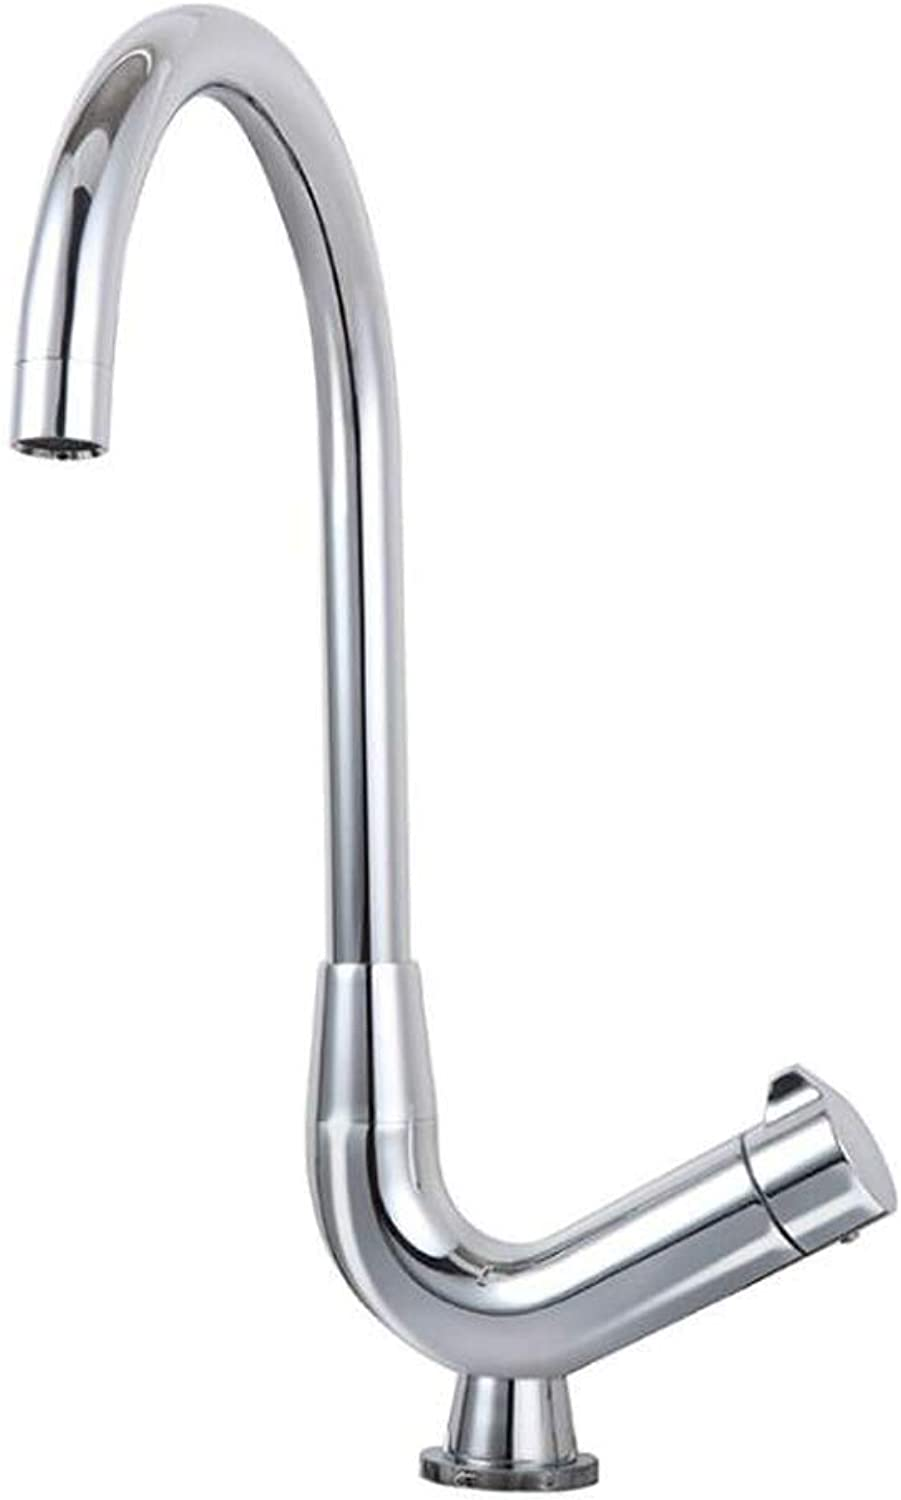 AXWT Countertop Basin Tap Bathroom Sink Mixer Tap With Lever Single Handle Chrome High Rise Brass Tap